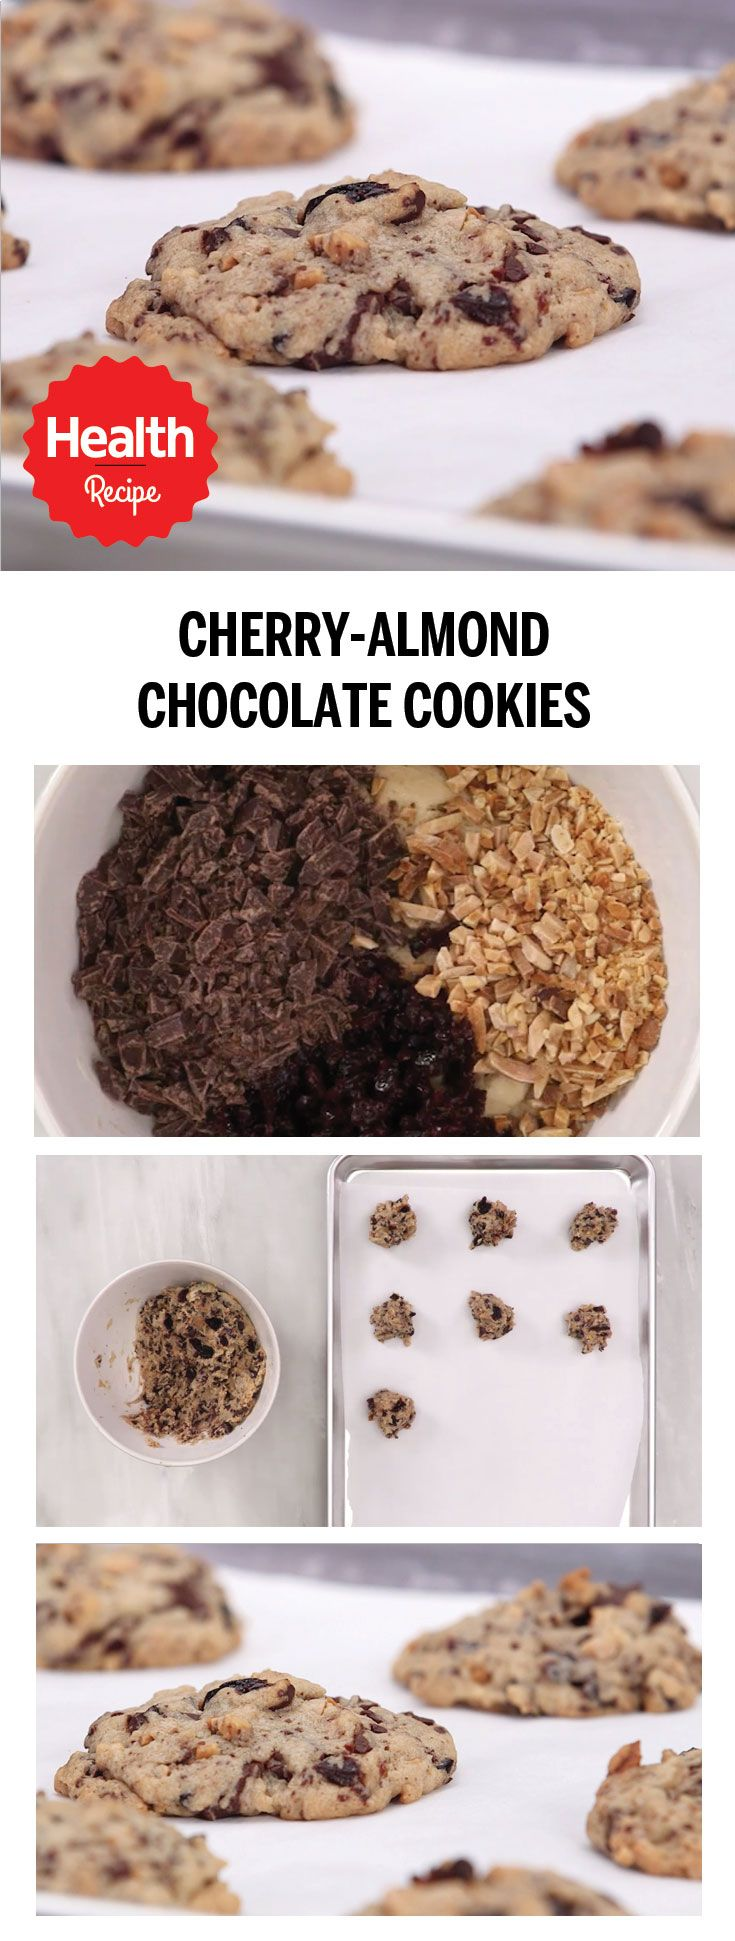 These festive holiday cookies are made with almonds, chocolate, and cherries, a delicious combination that will delight your taste buds and please even the pickiest holiday guest. | Health.com